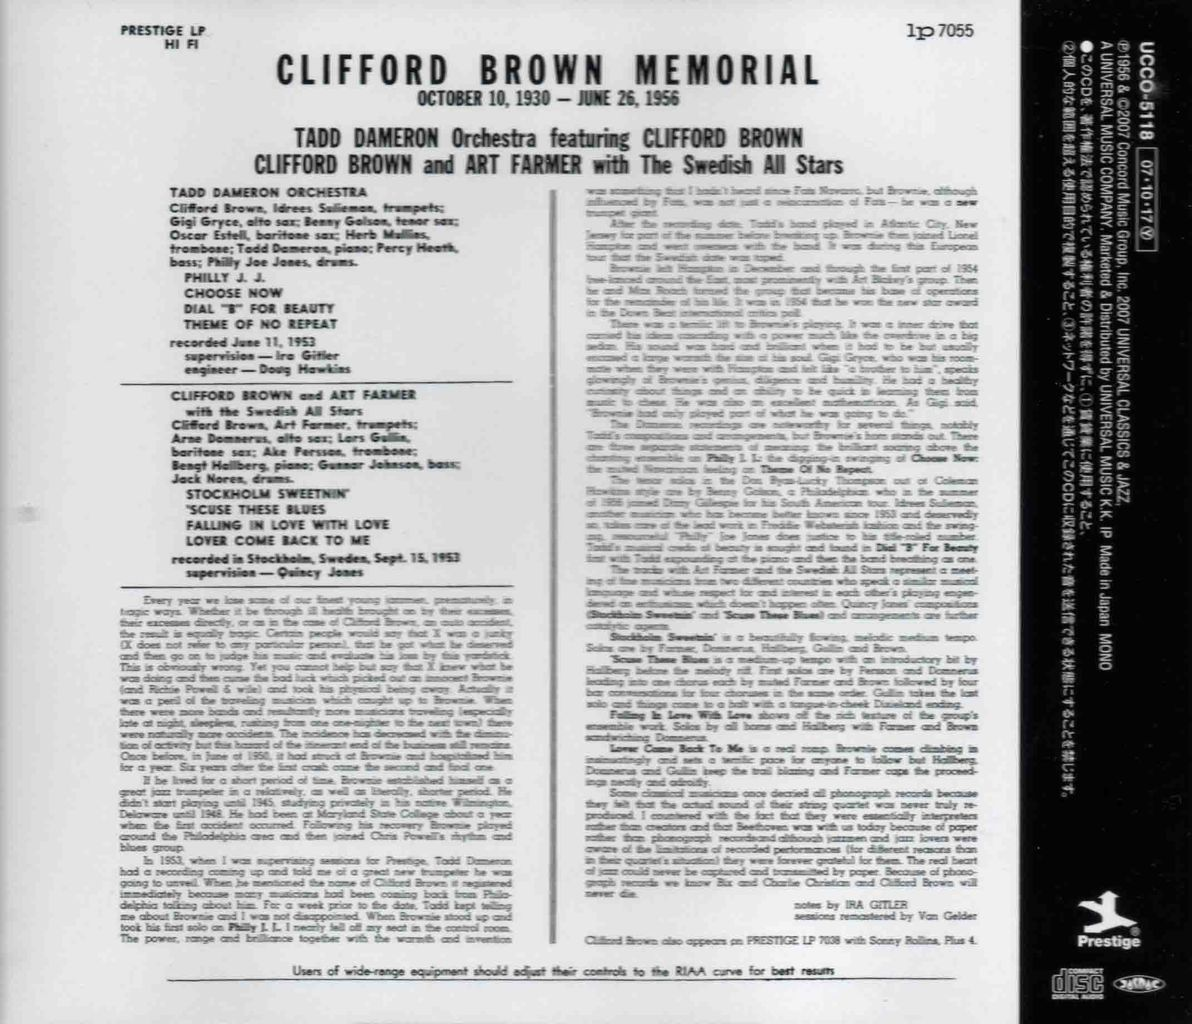 CLIFFORD BROWN MEMORIAL-2